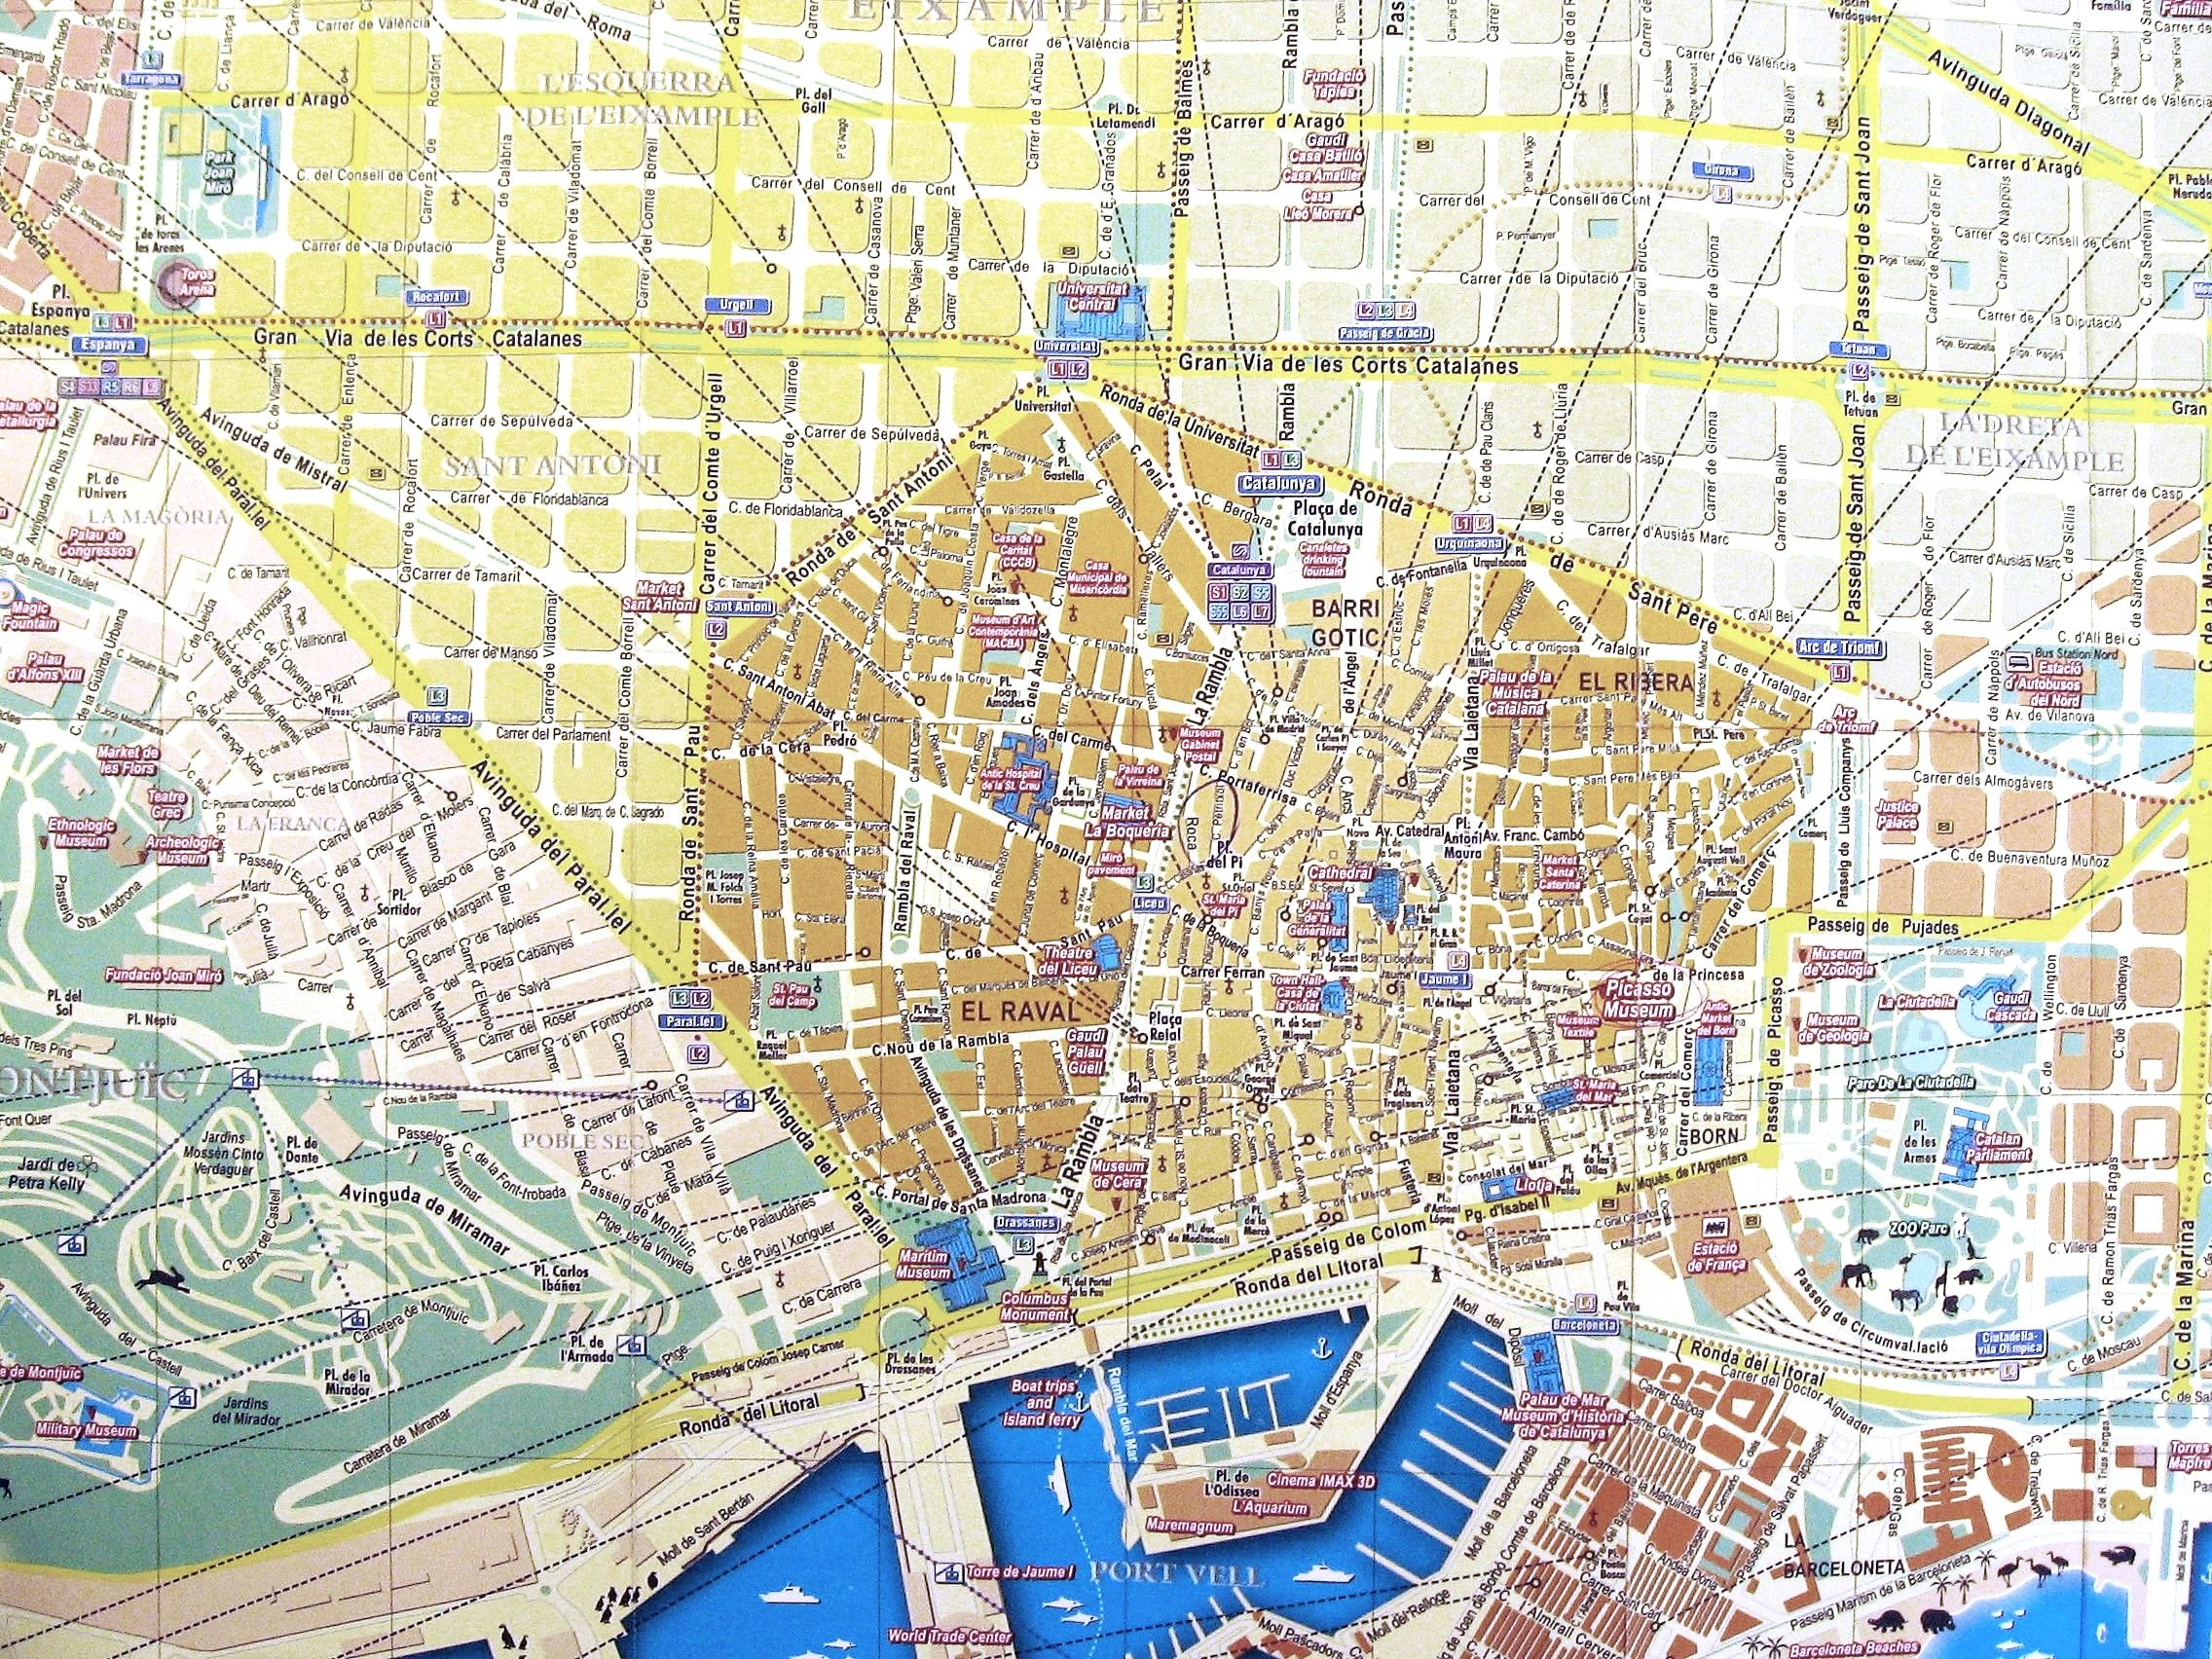 Streets map of Barcelona for tourists and visitors   Spain   Travel     Streets map of Barcelona for tourists and visitors   Spain